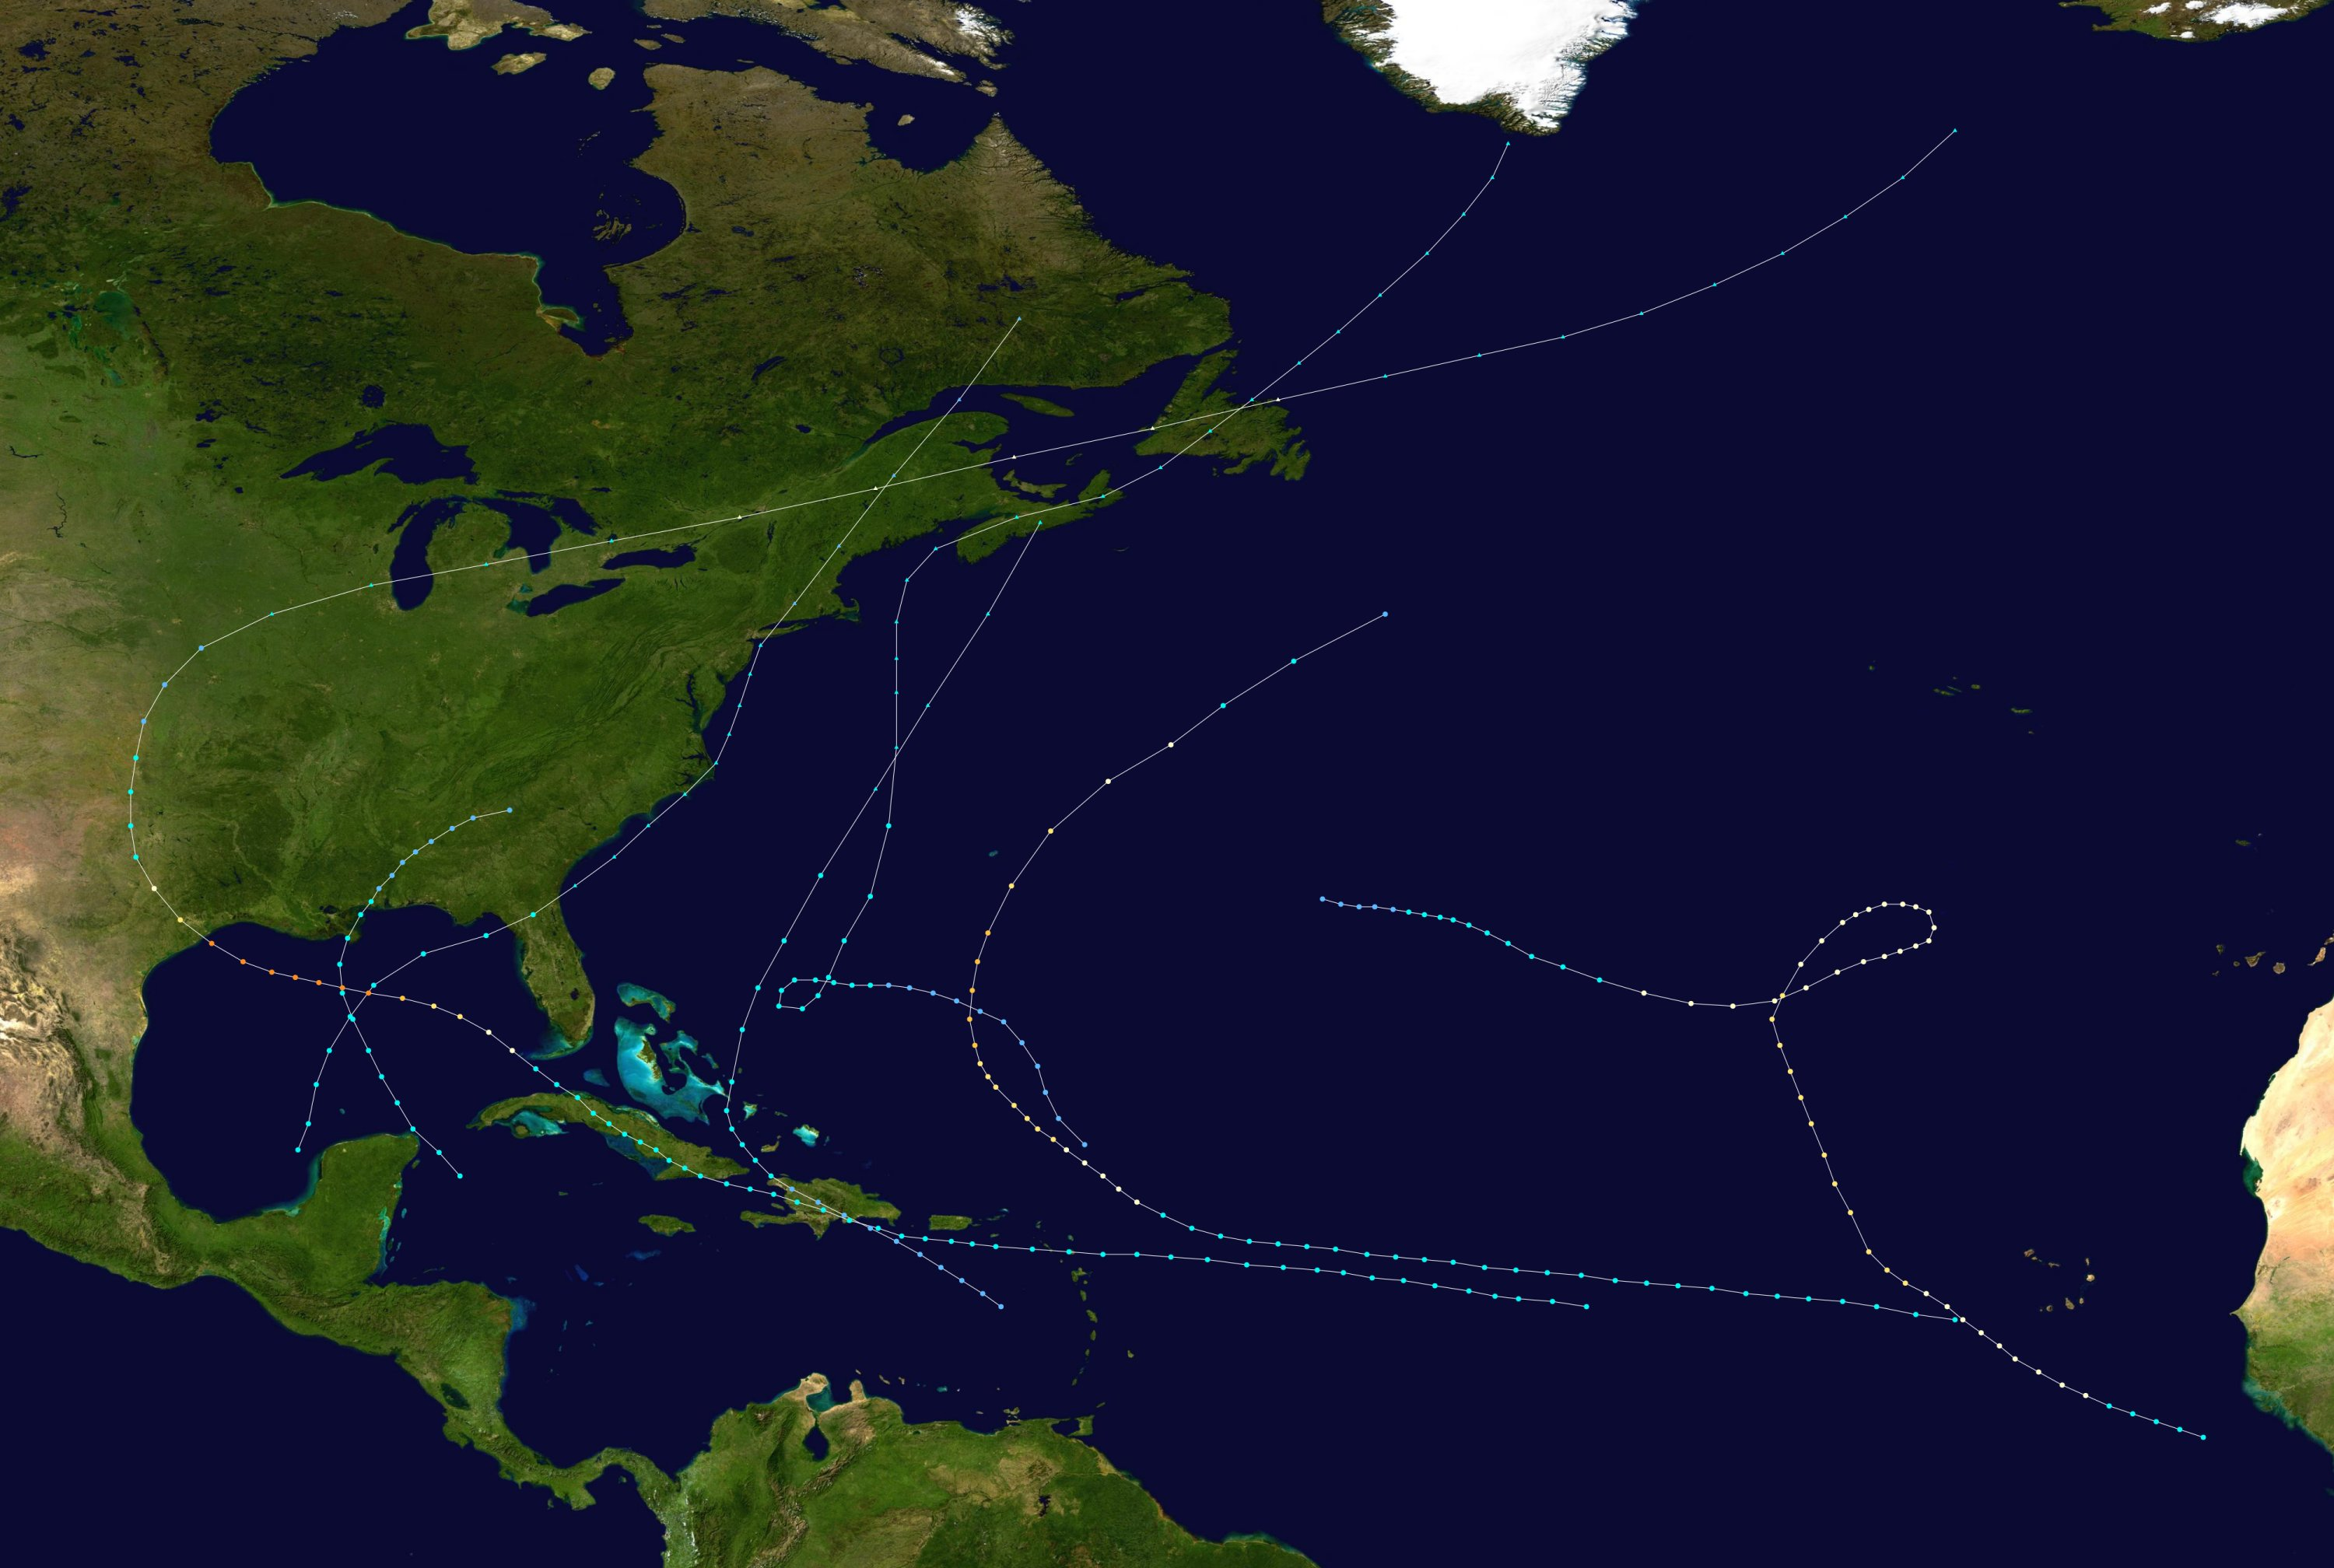 1900 Atlantic hurricane season